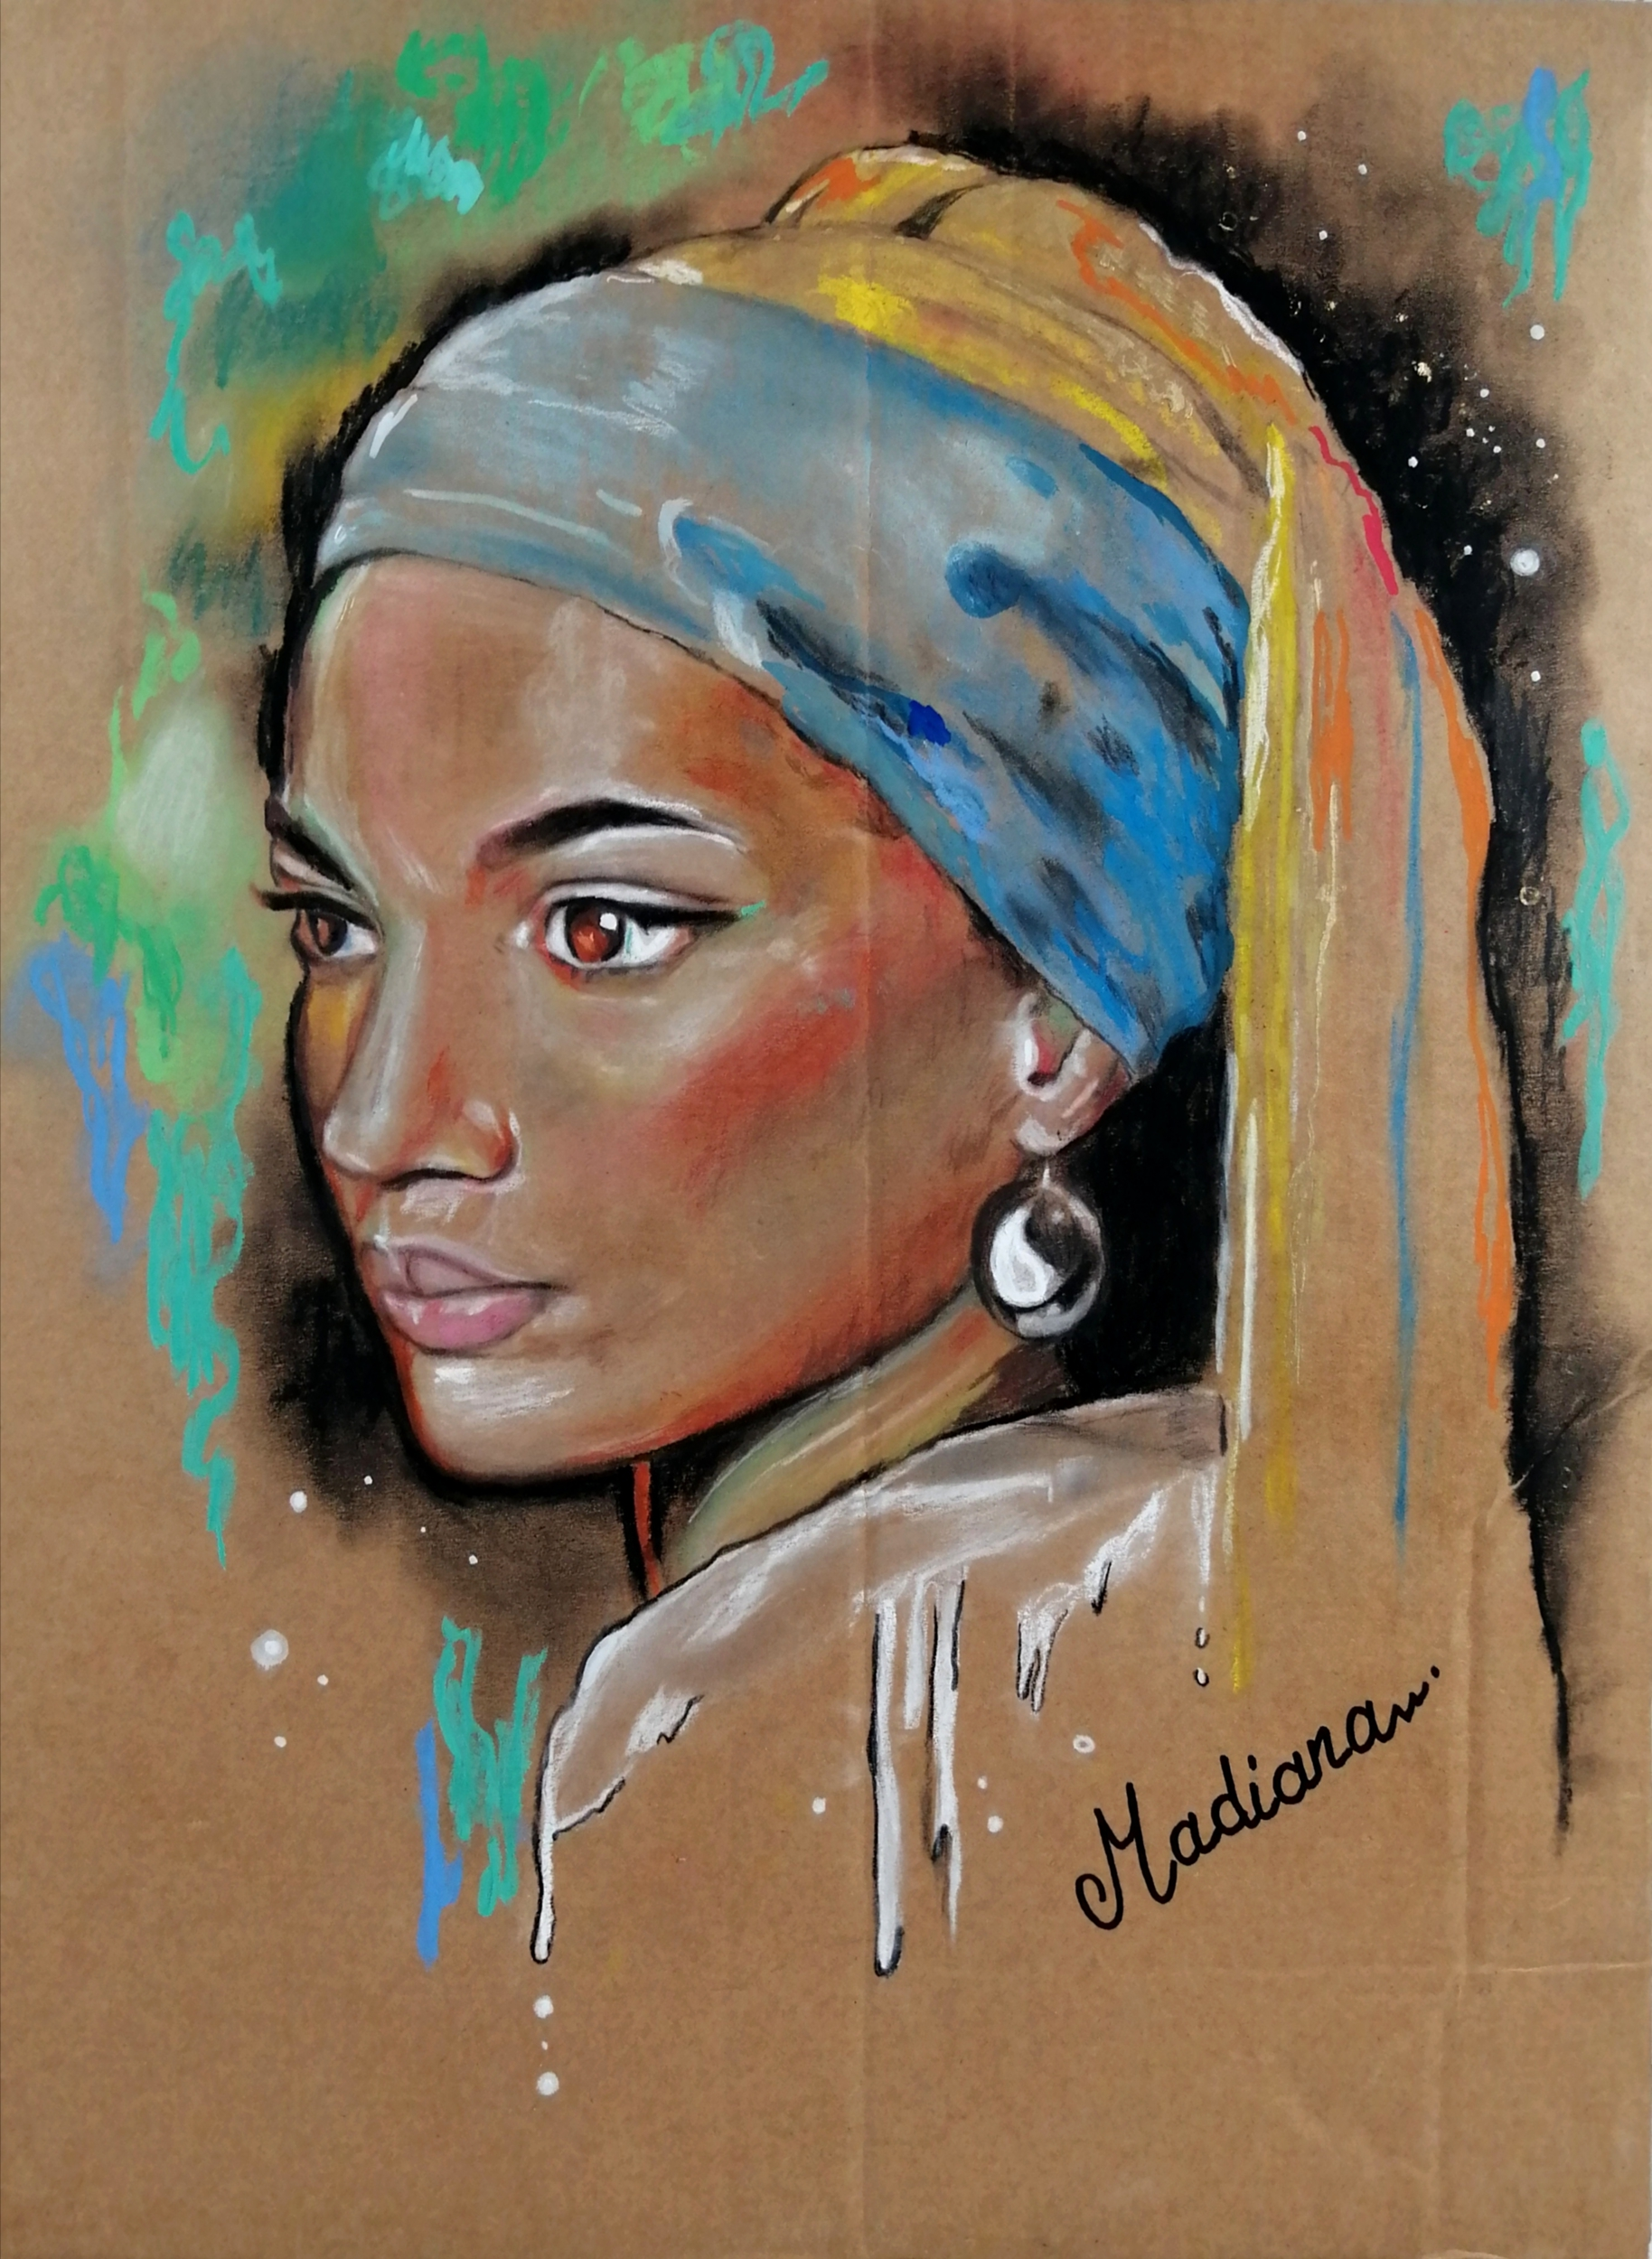 Poster contemporary art black woman africa space universe